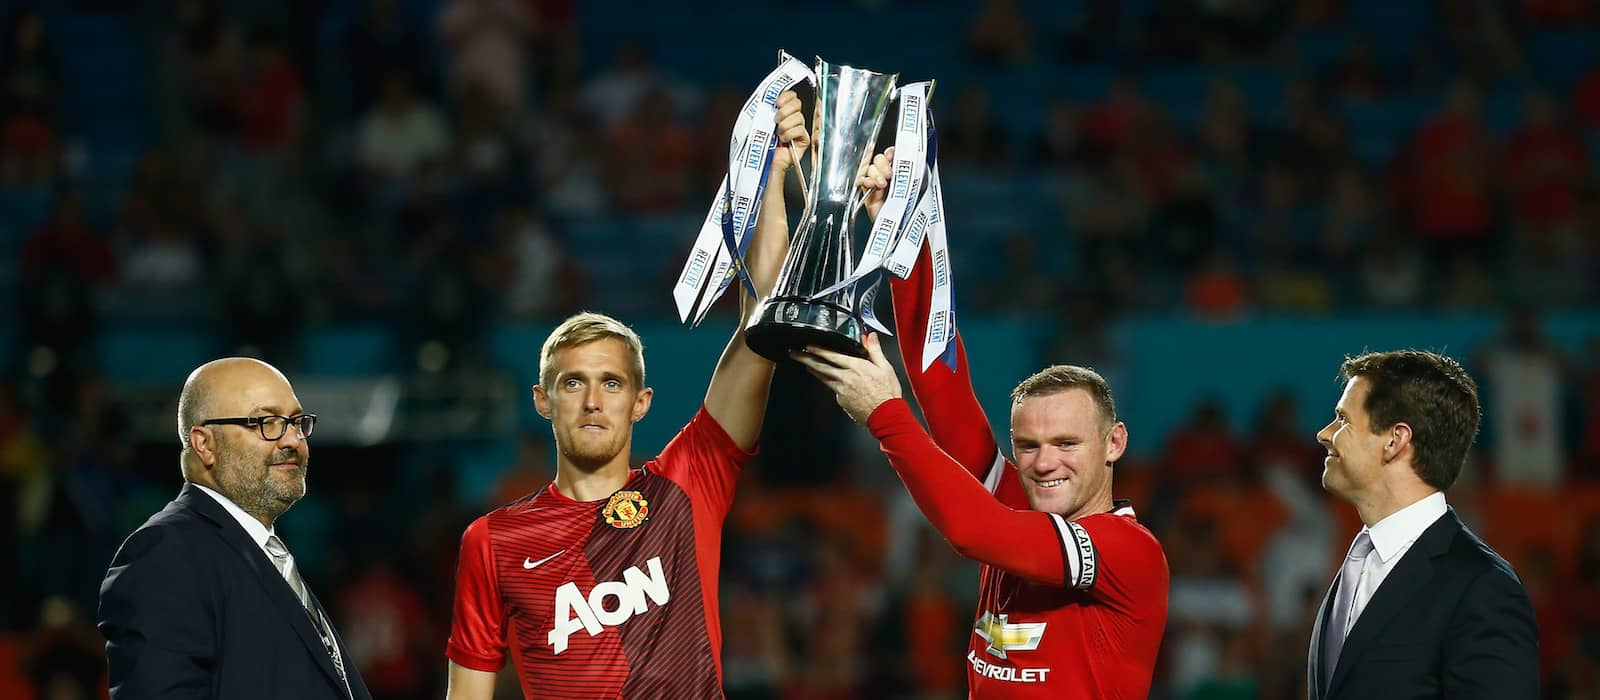 Darren Fletcher hints at Manchester United's potential transfer targets